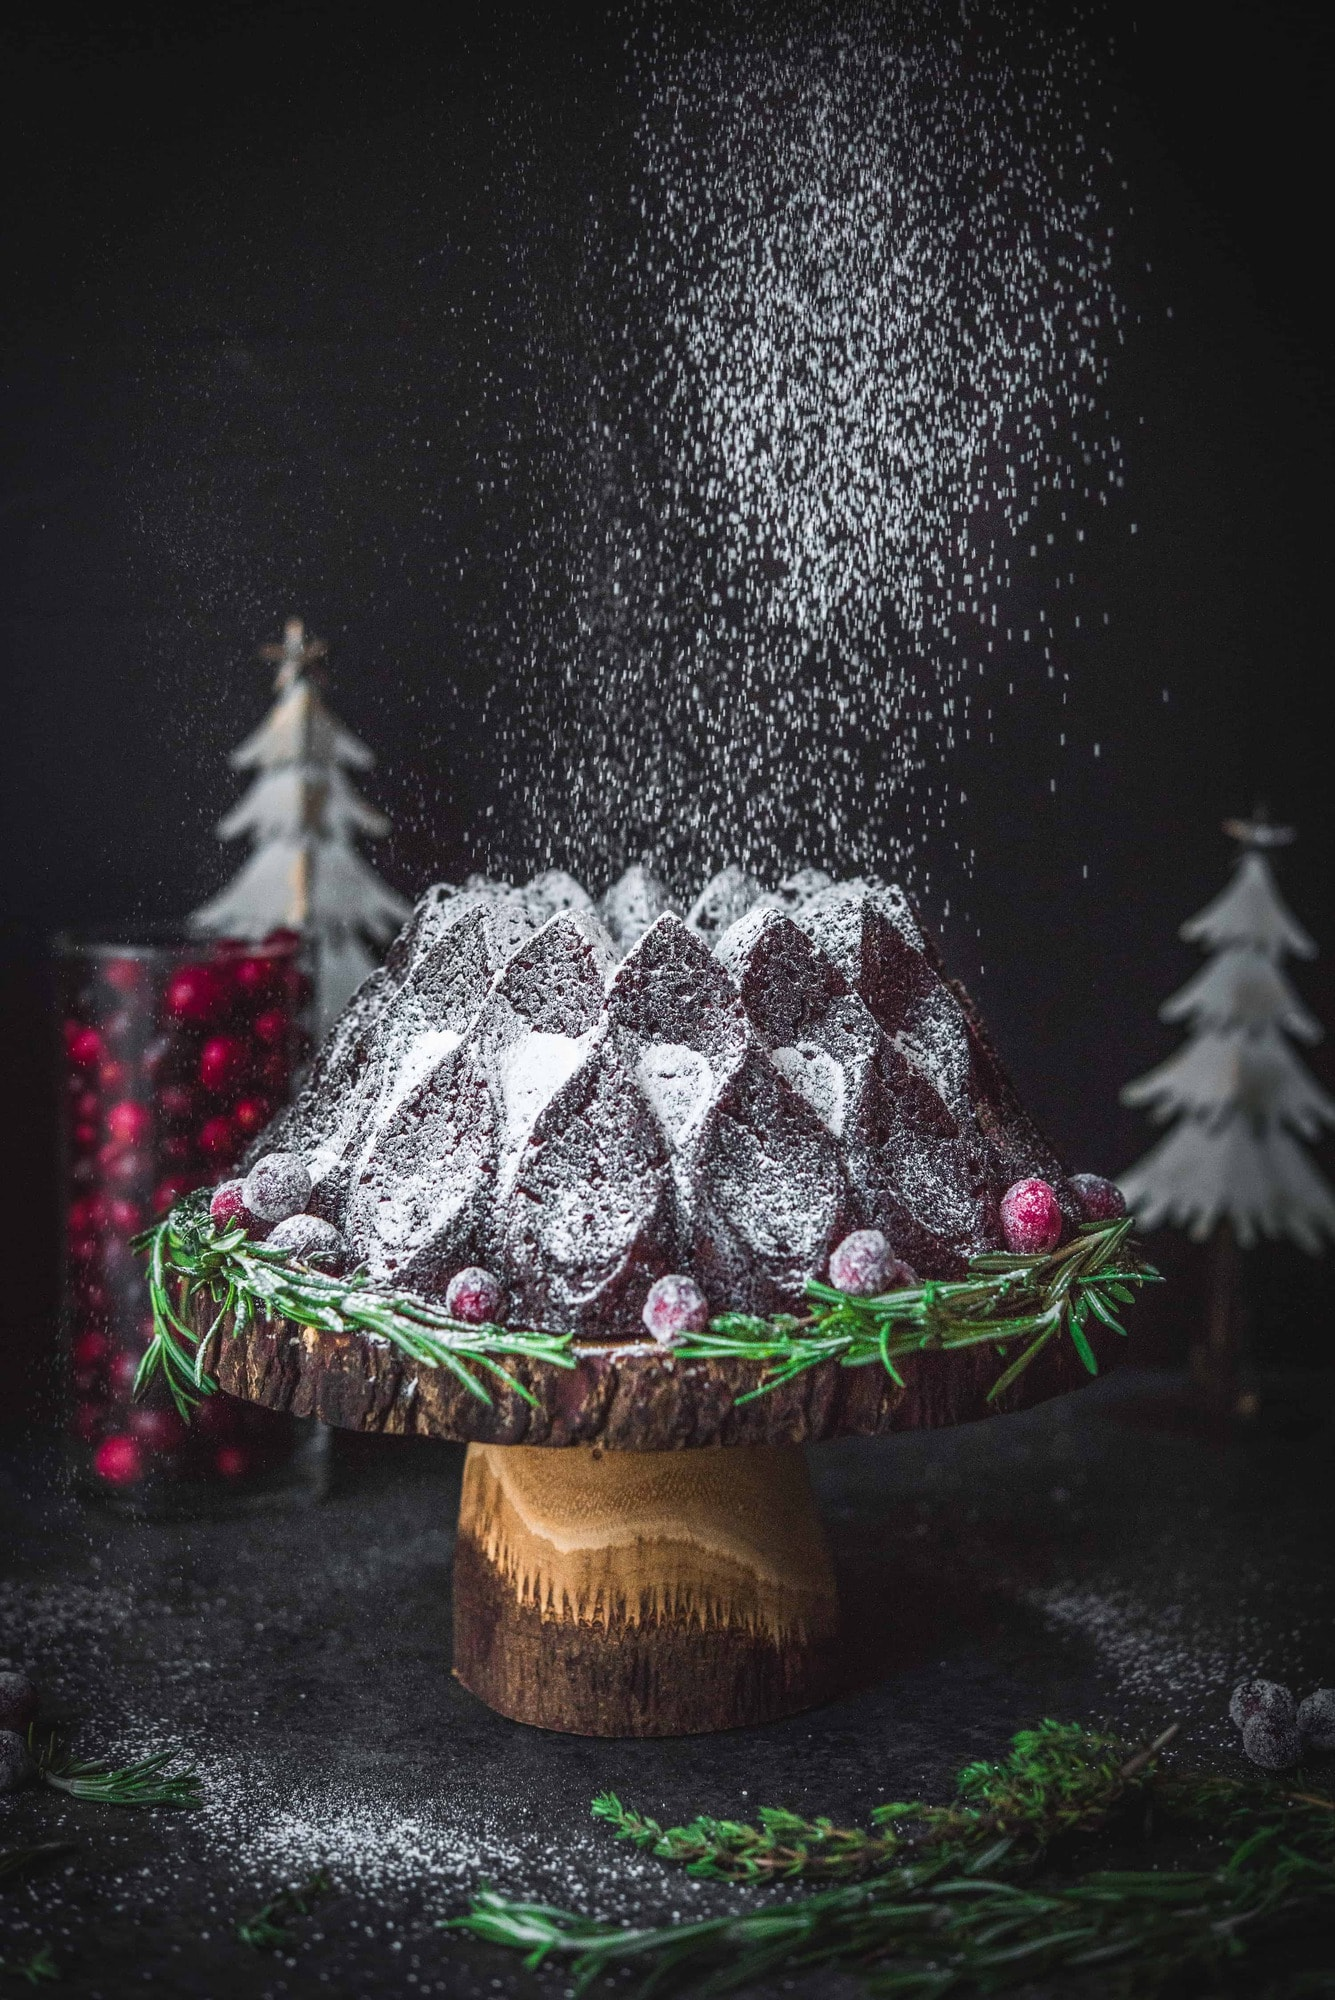 Action shot of powdered sugar falling on chocolate gingerbread bundt cake